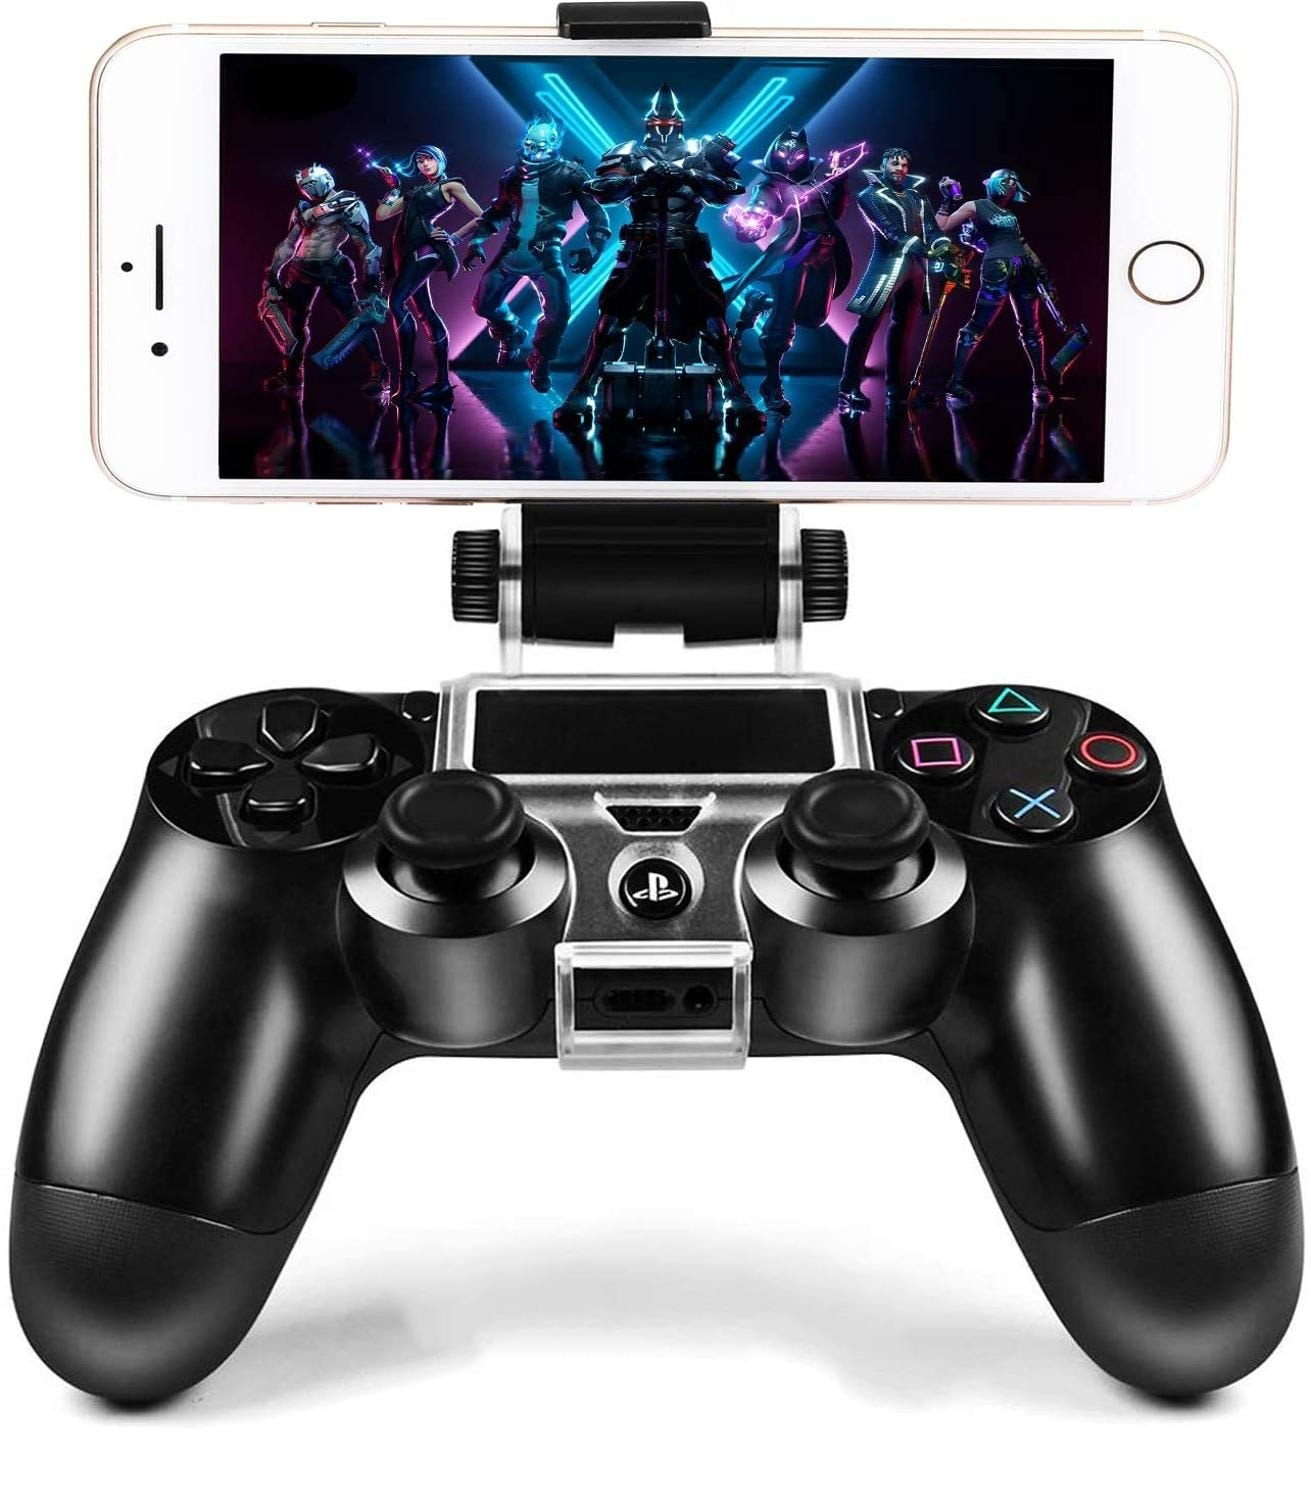 270x Degree PS4 Wireless Controller Phone clip Mountx Holder Stand Bracket Compatible with PS4 Pro/Slim Dualshock 4 Black - 2